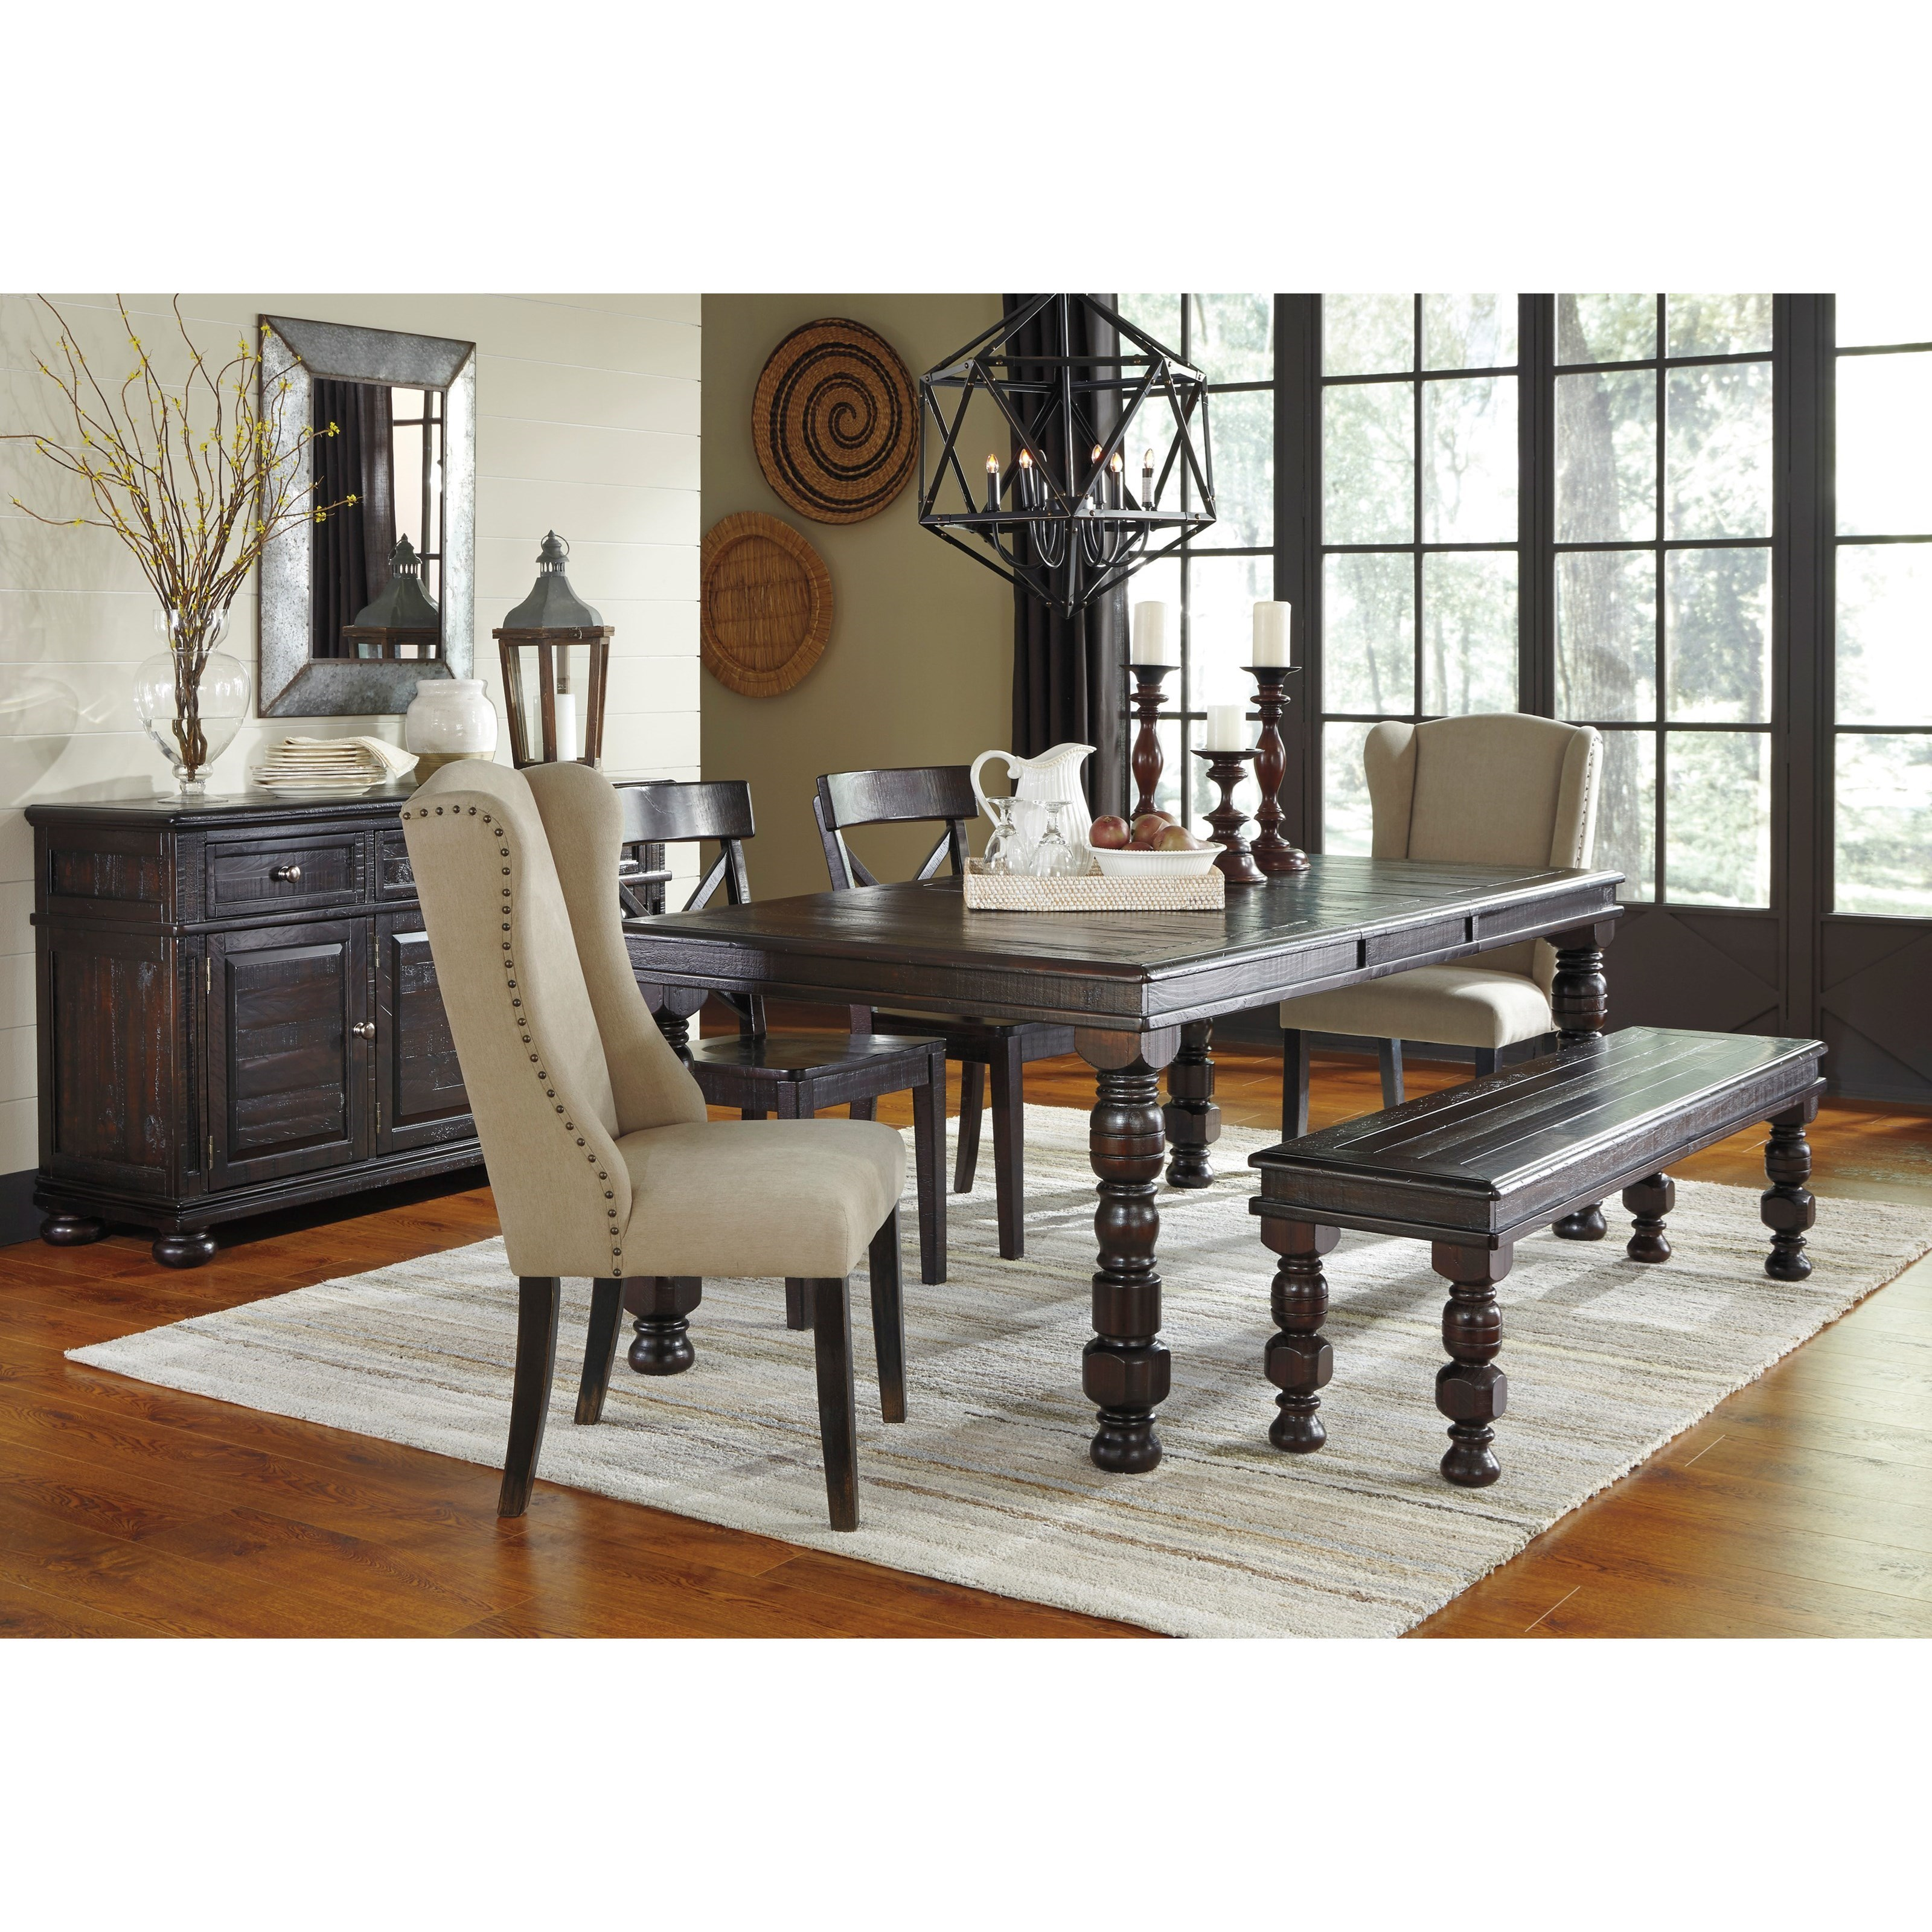 Signature Design by Ashley Gerlane Casual Dining Room